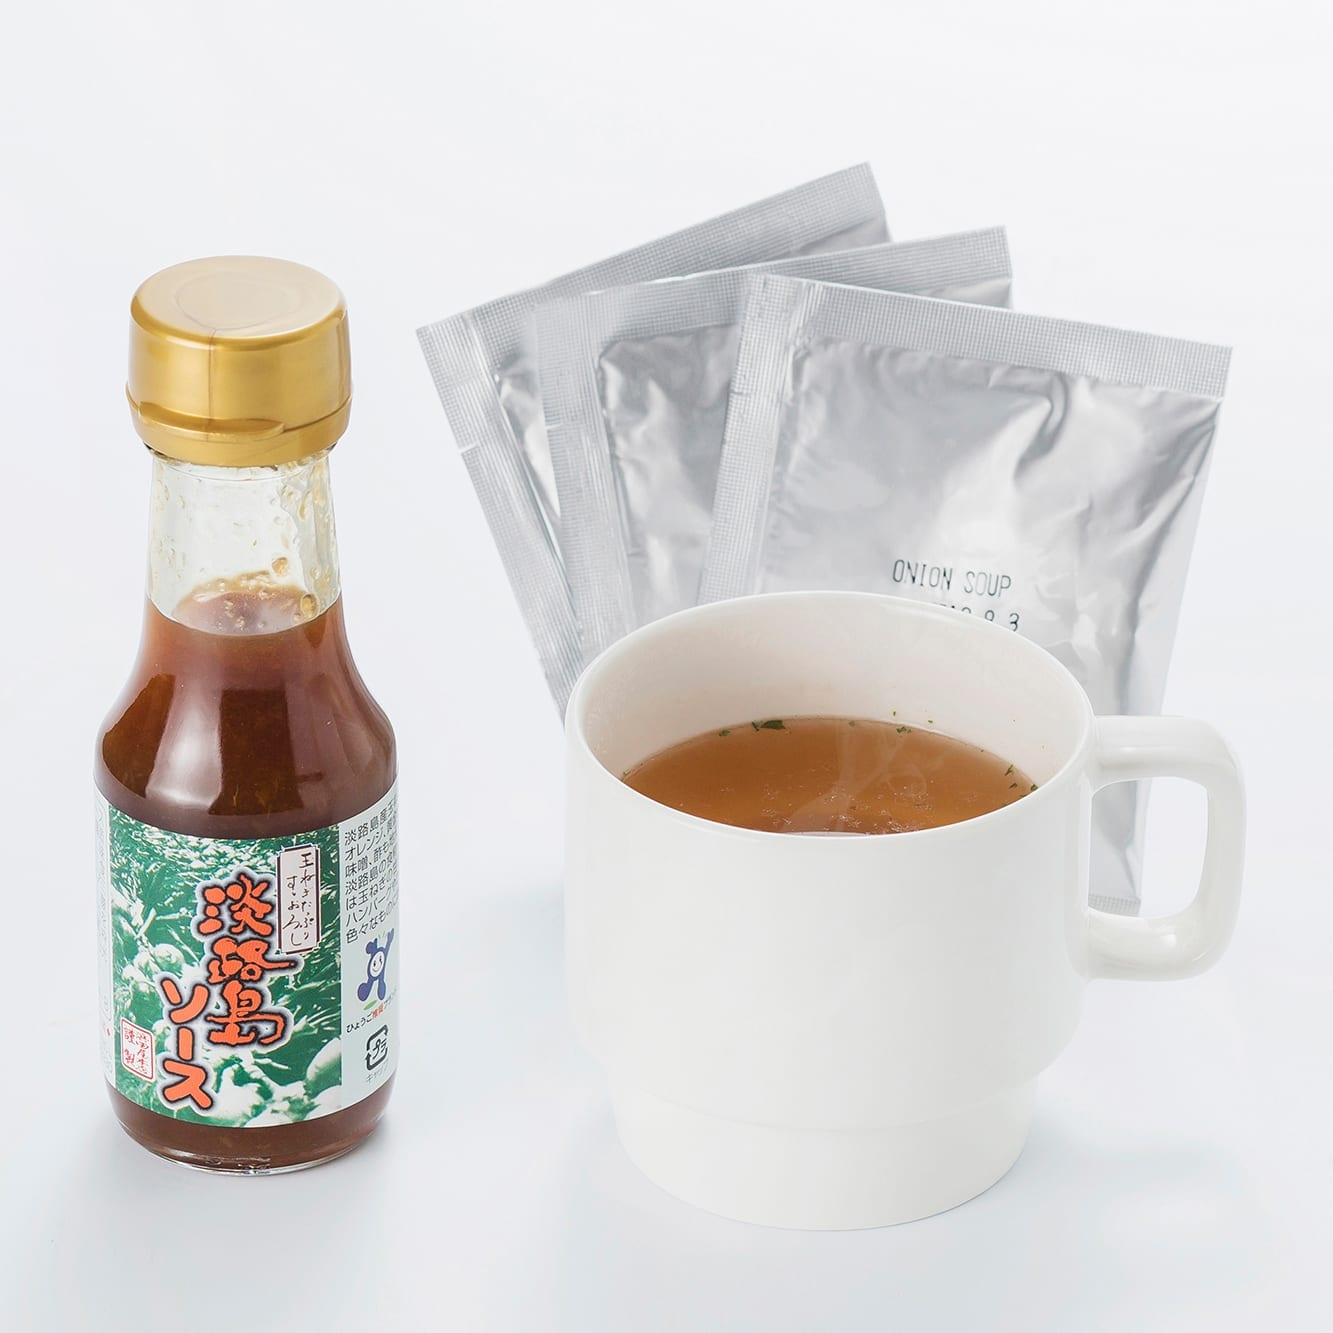 Awaji Island Sauce (95ml bottle) + 3 onion soup packets